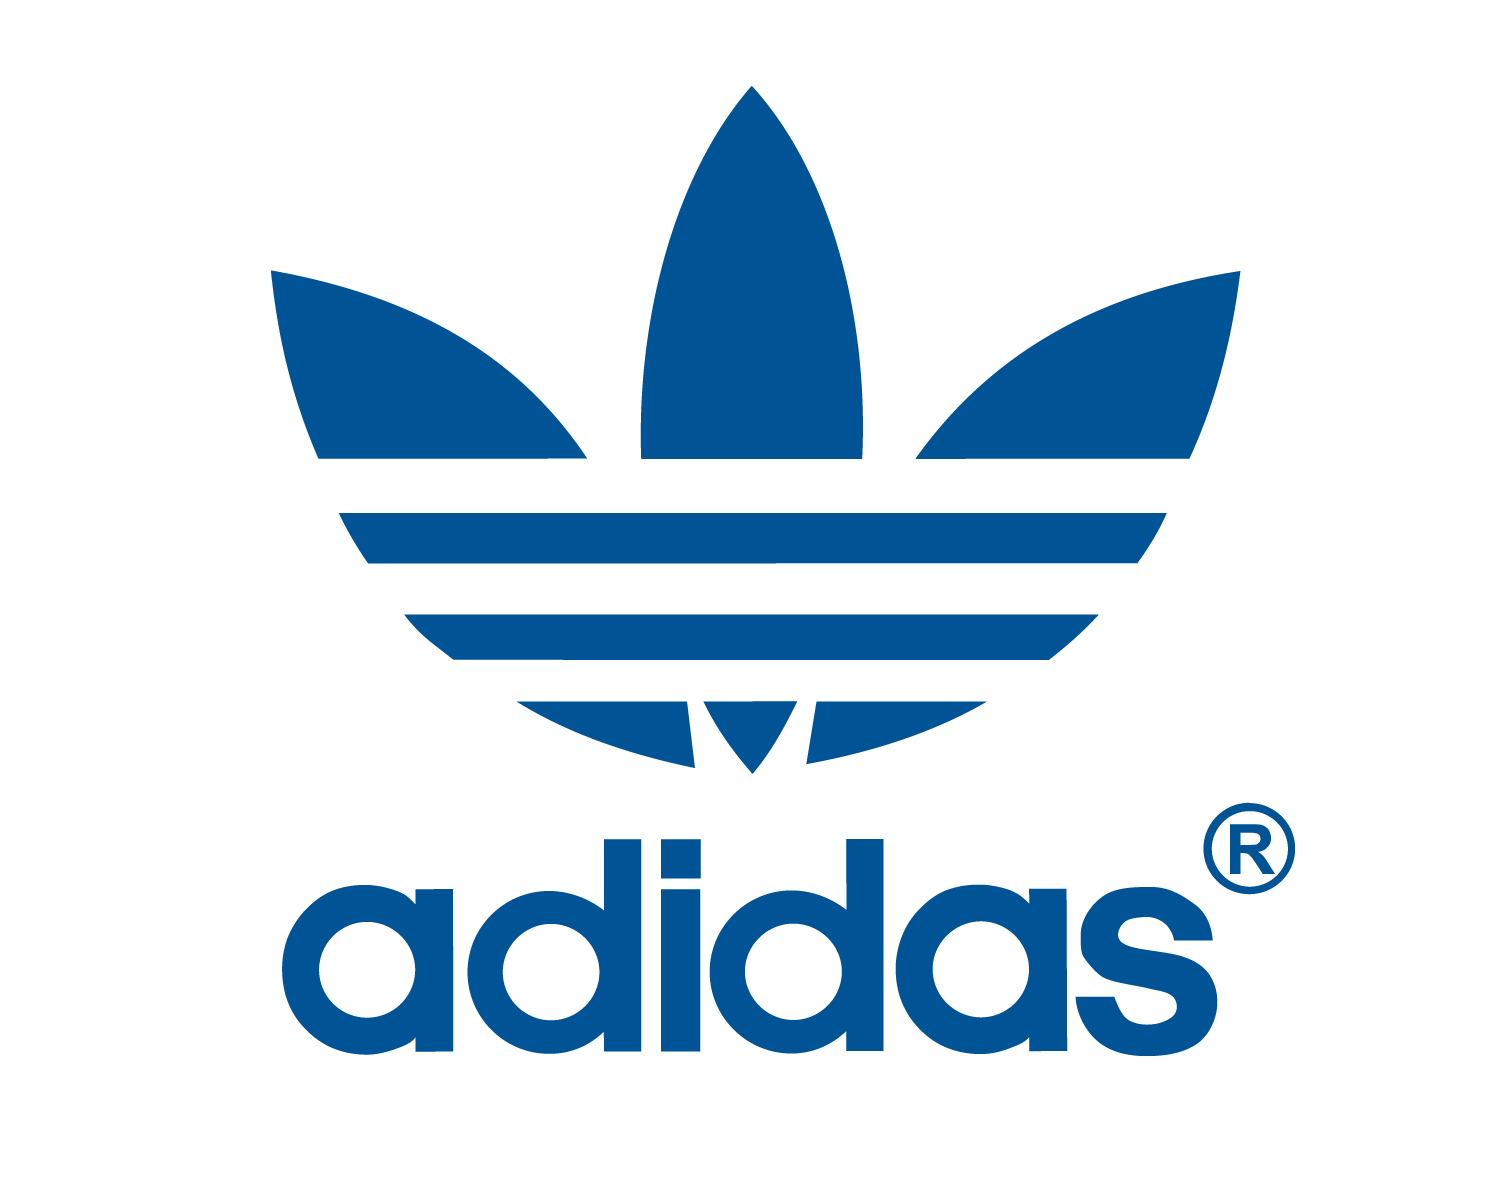 Adidas logo png transparent background famous logos logos adidas logo png transparent background famous logos biocorpaavc